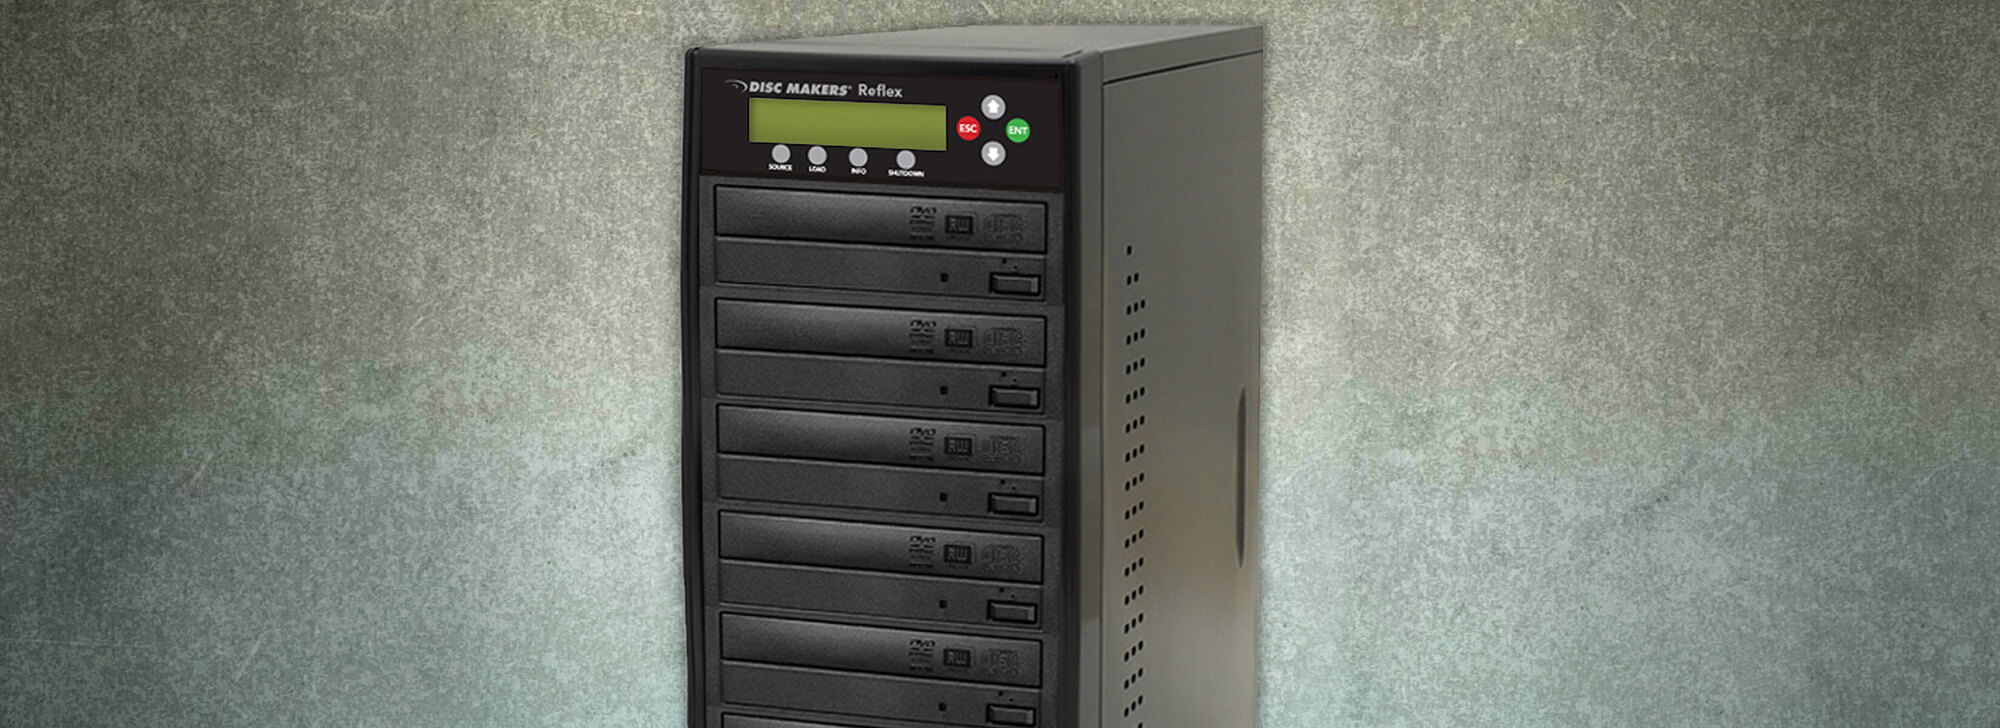 Daisy Chain CD/DVD Duplicator